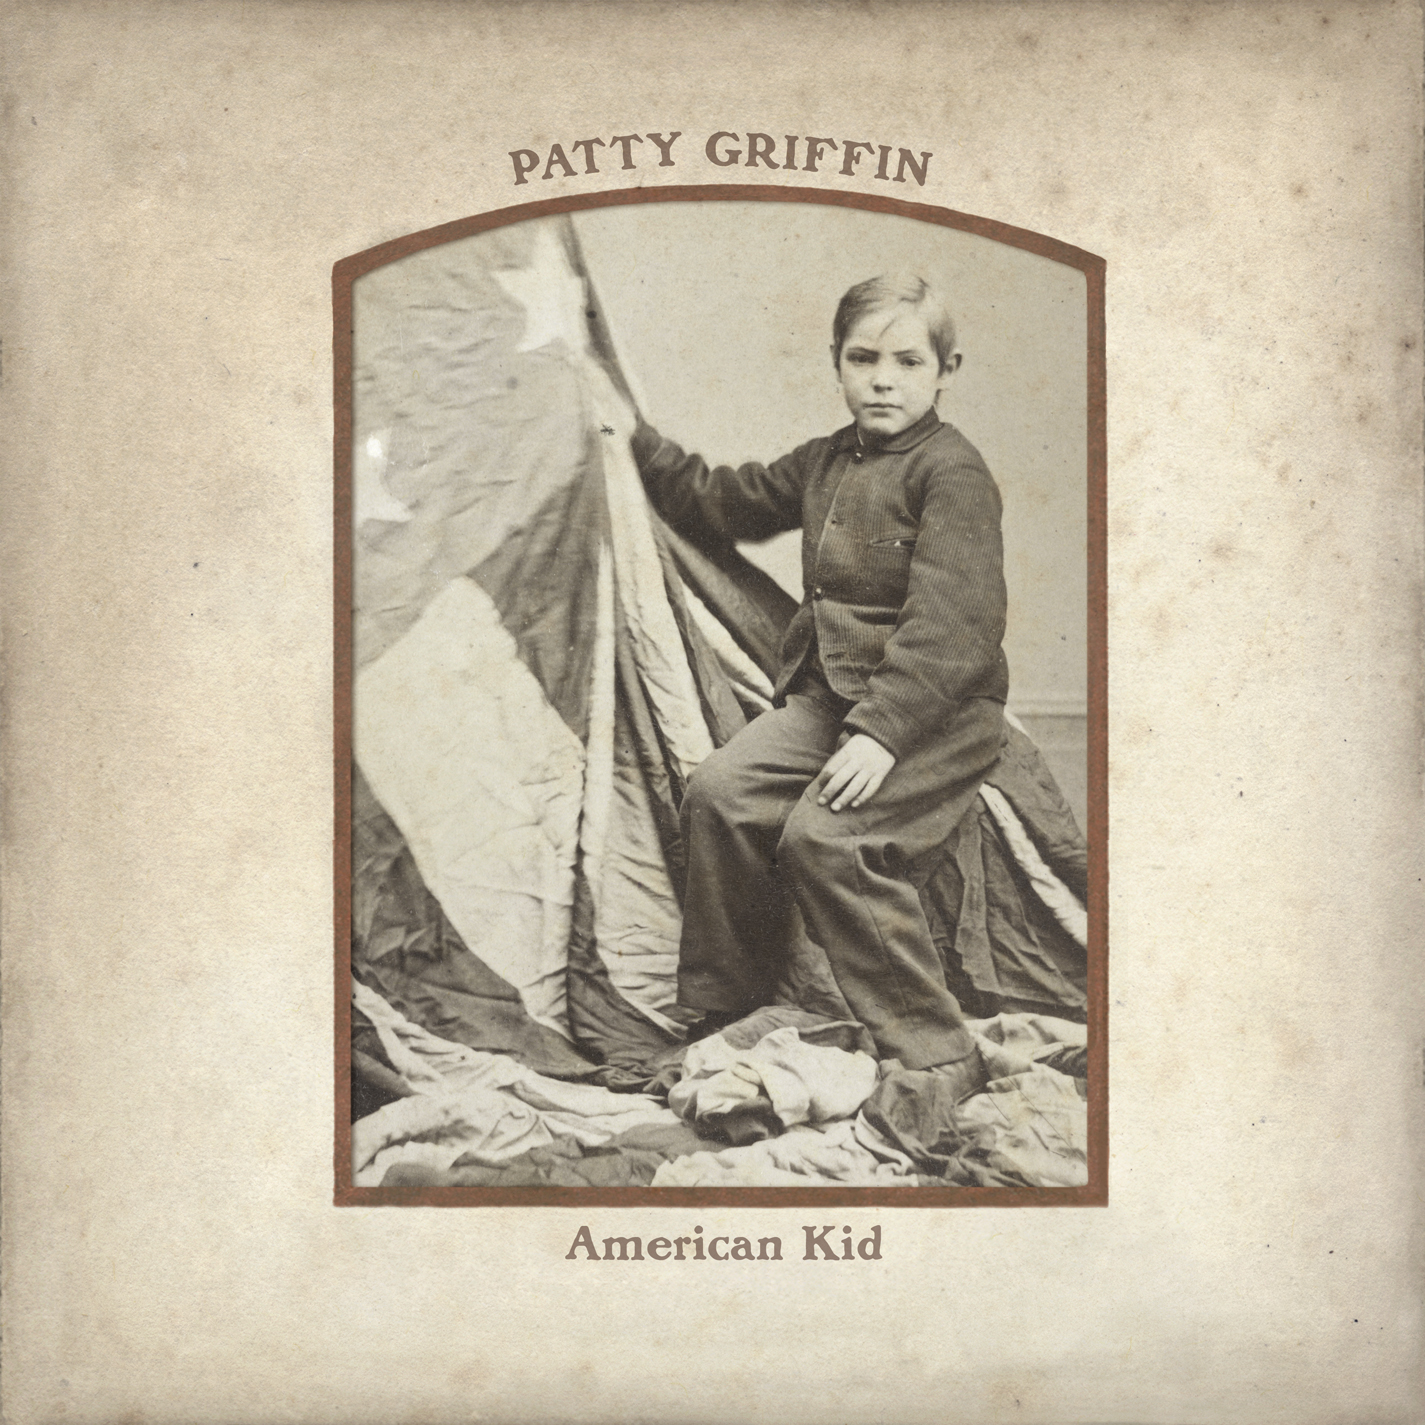 Patty Griffin: American Kid